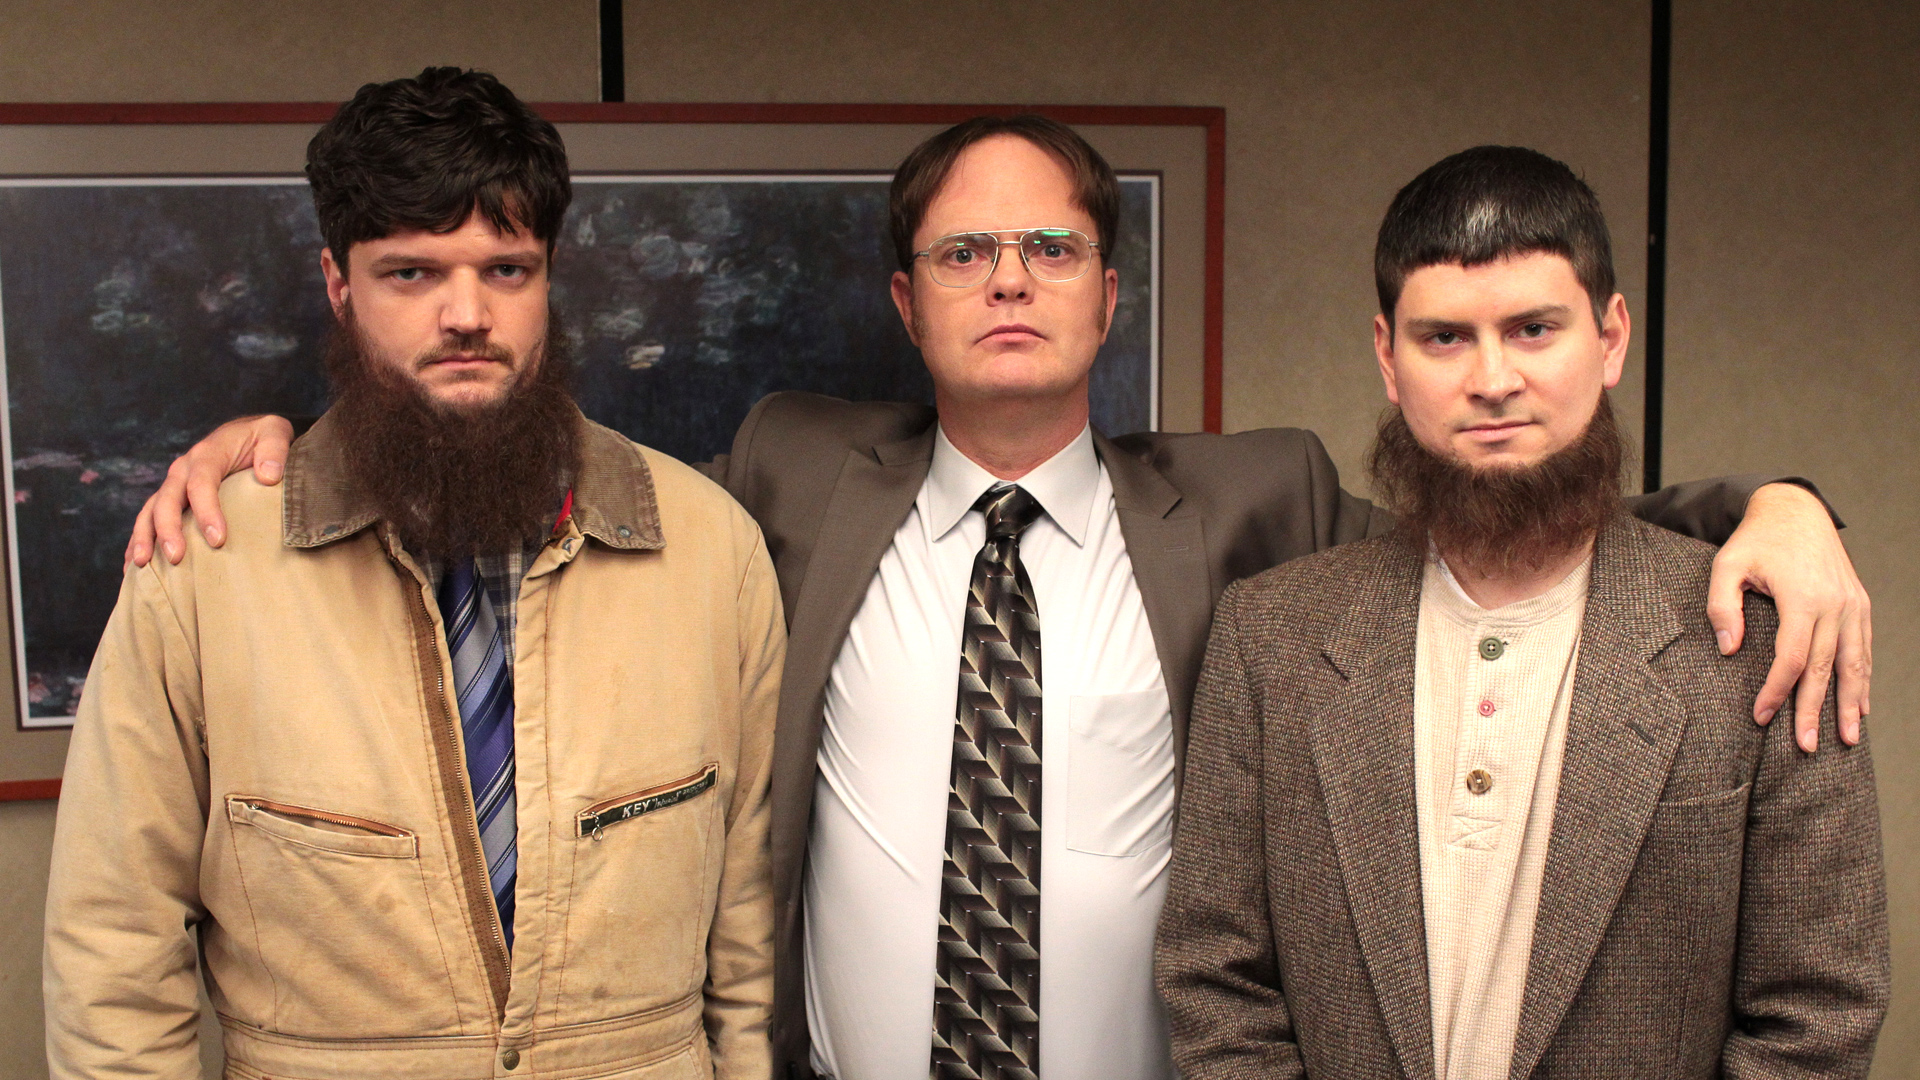 The Schrute Family